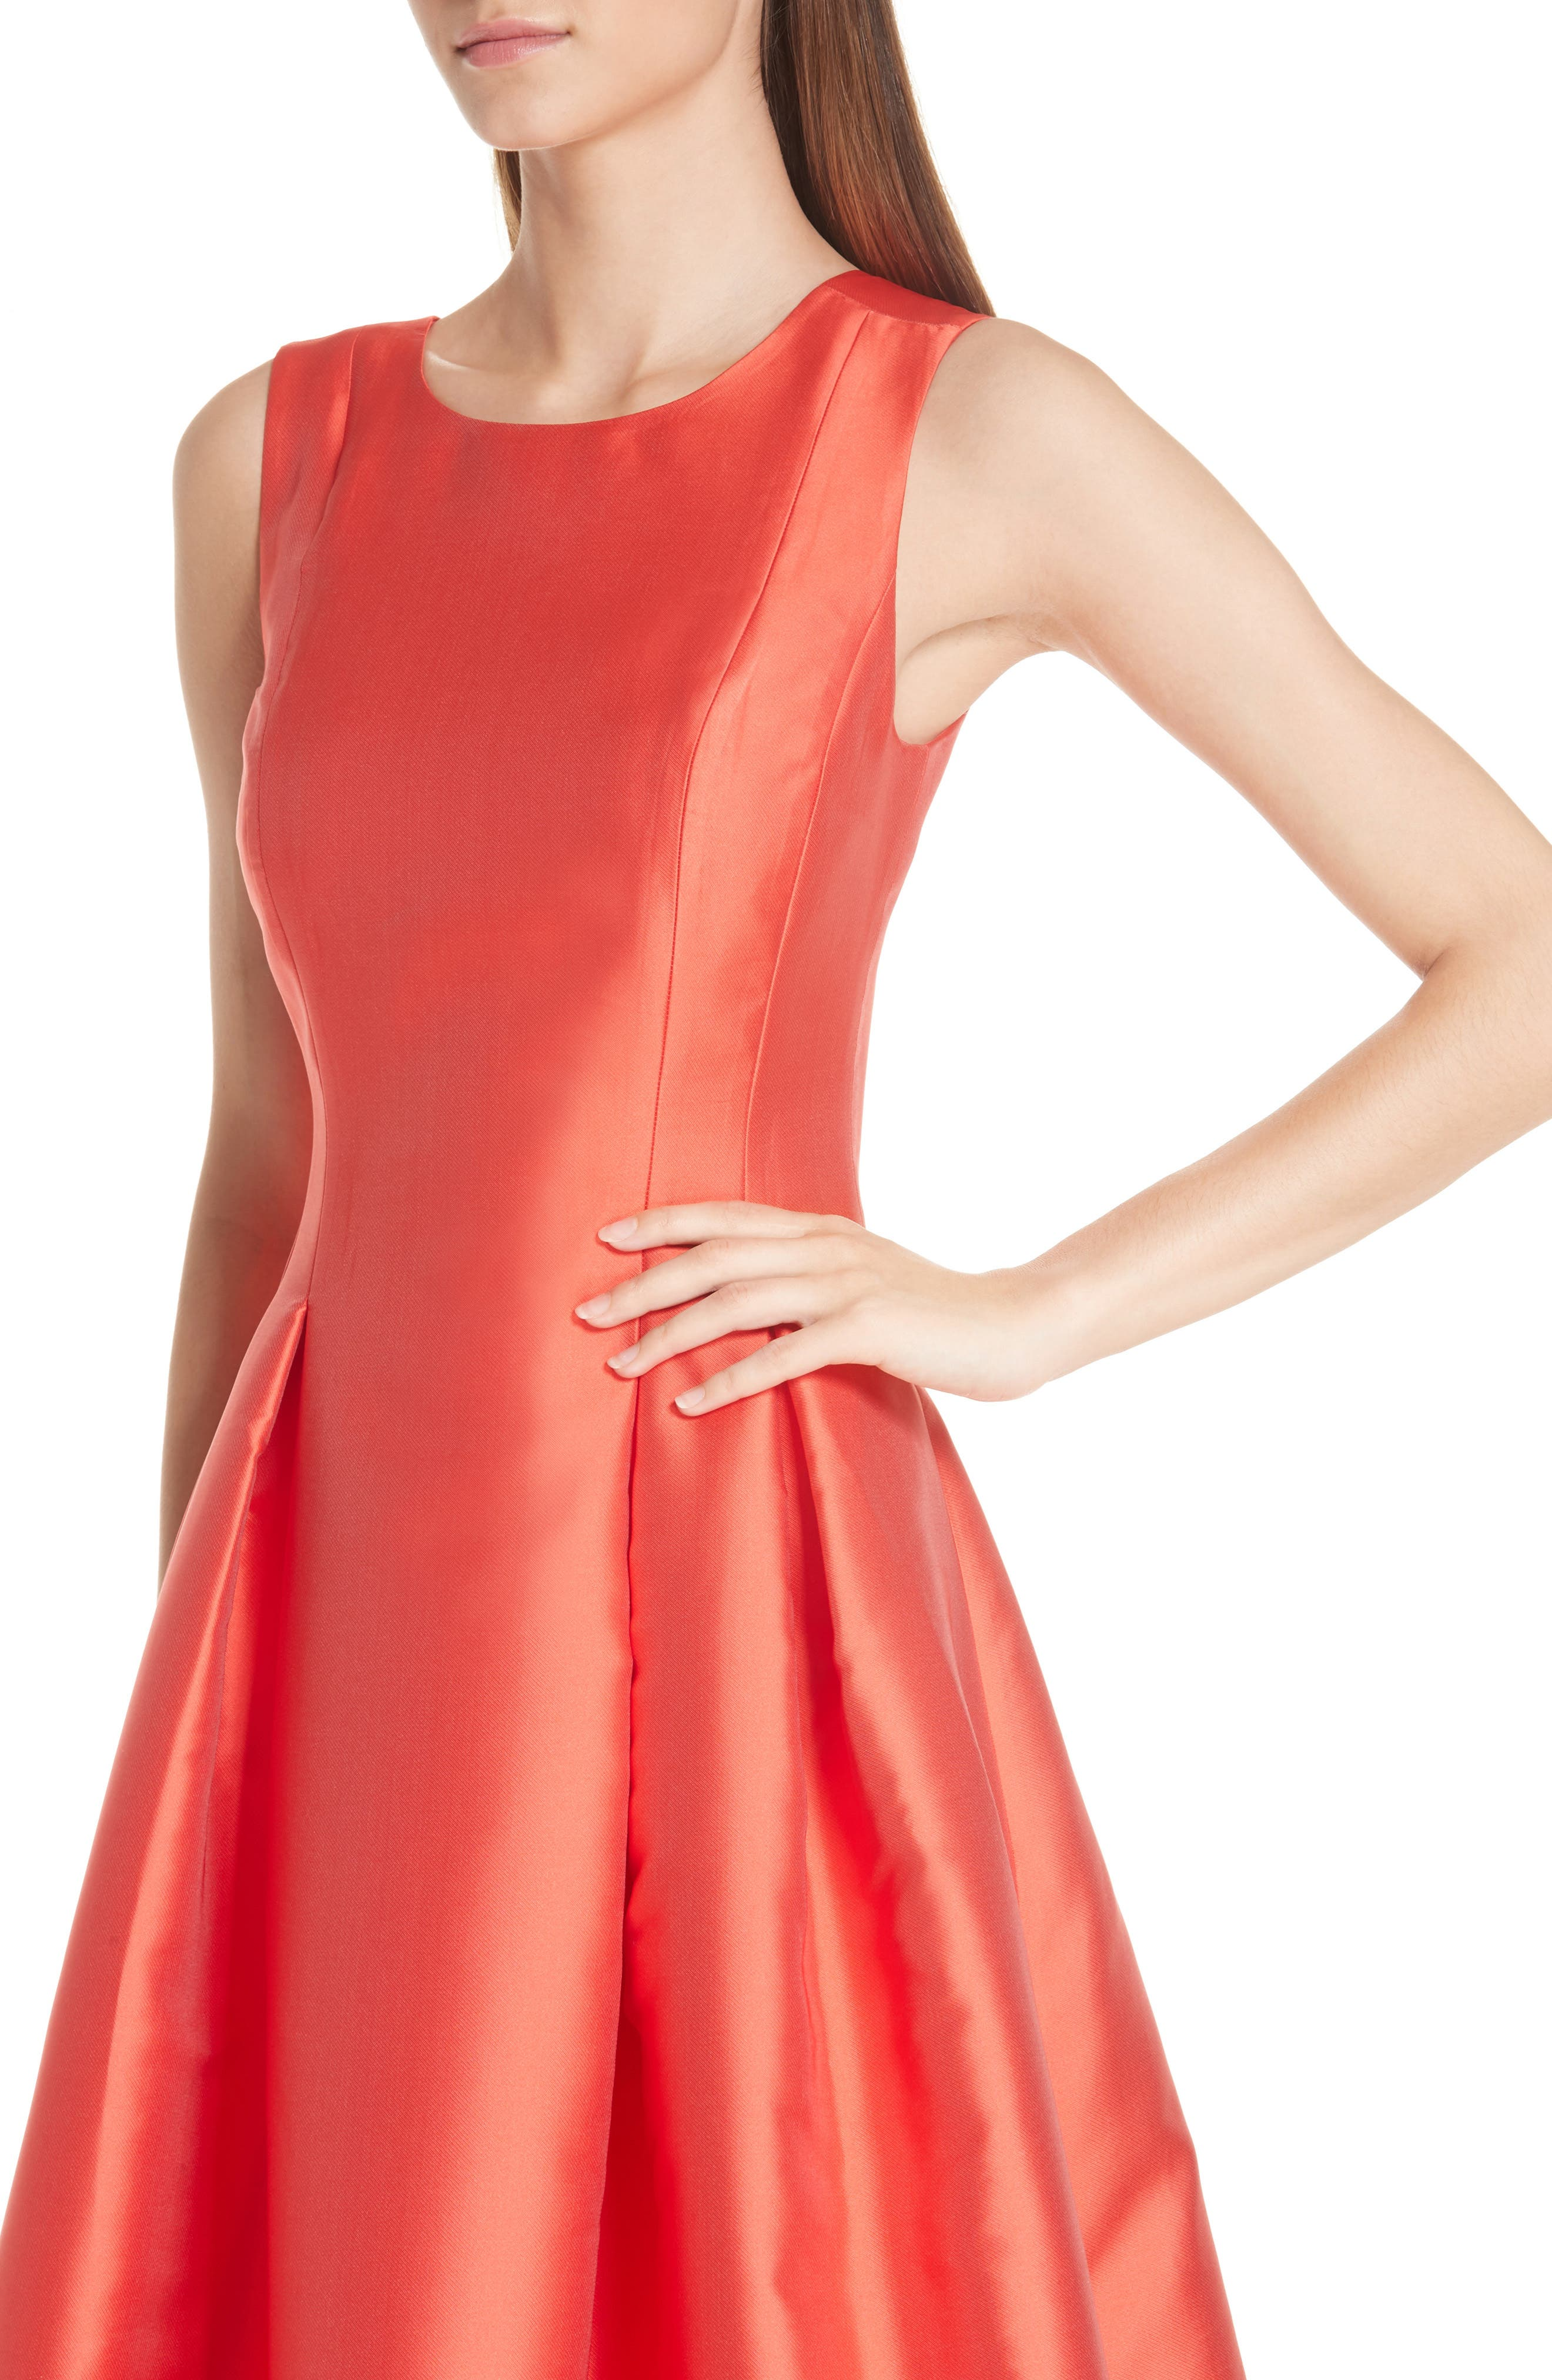 Marmara Ballgown,                             Alternate thumbnail 3, color,                             Coral Red